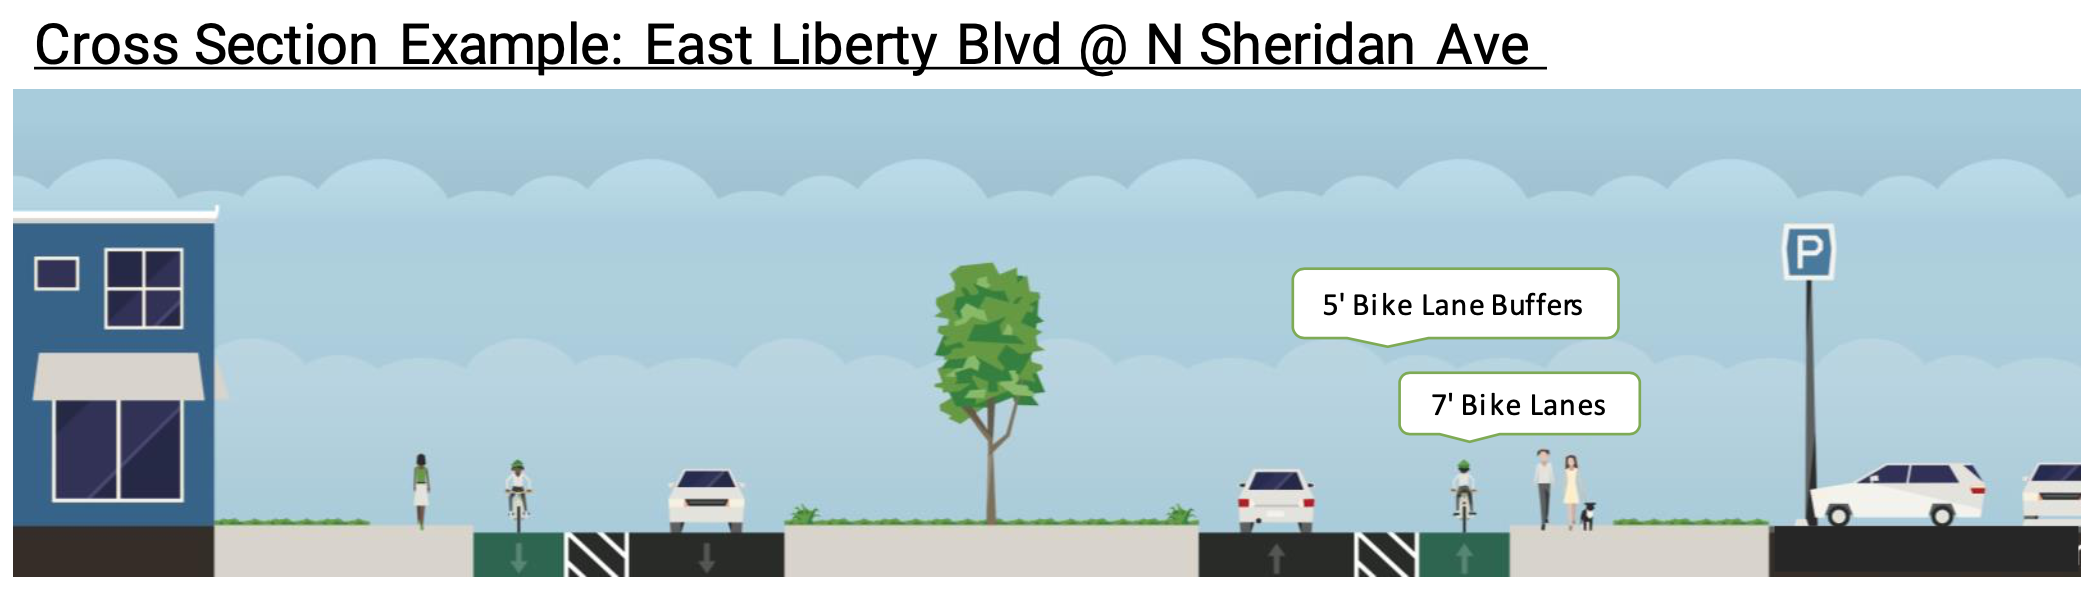 Image shows a diagram of the proposed cross section showing sidewalk, bike lane, painted buffer, car lane, median, car lane, painted buffer, bike lane, sidewalk